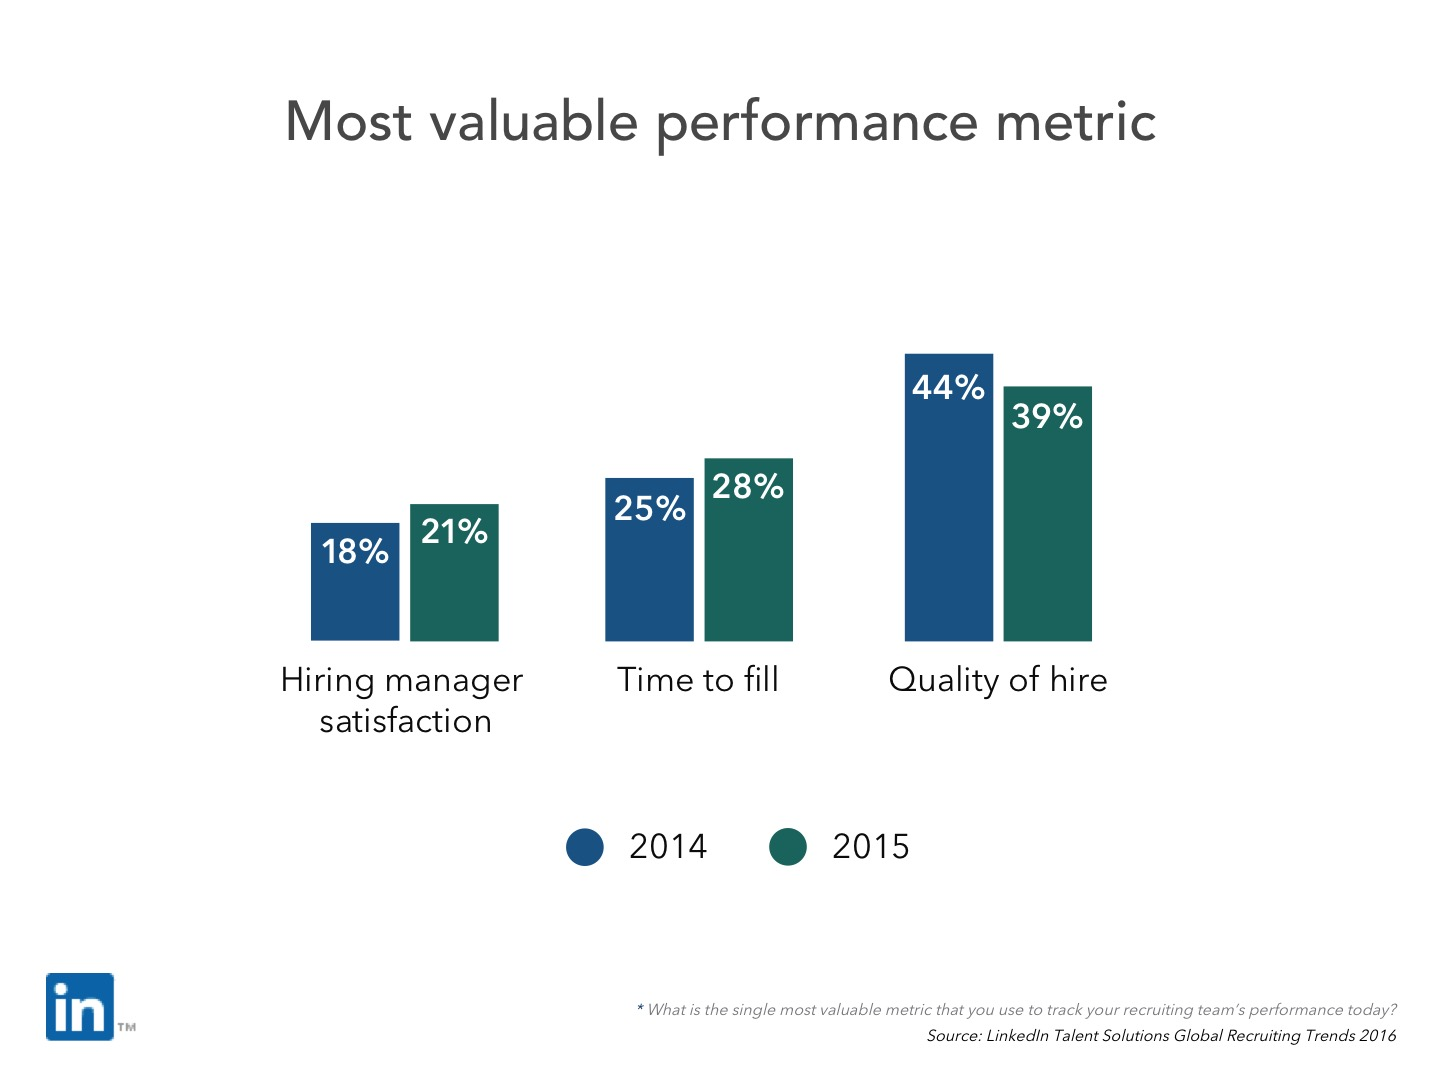 Quality of hire - most valuable metric